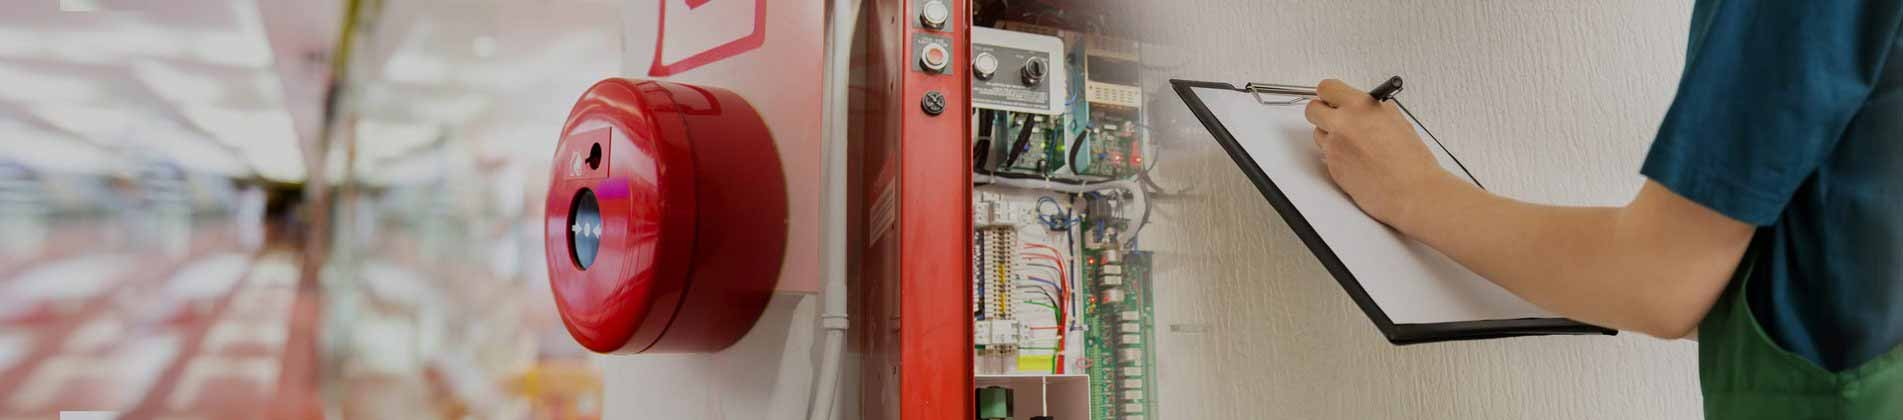 Fire Alarm System Inspection in Houston TX